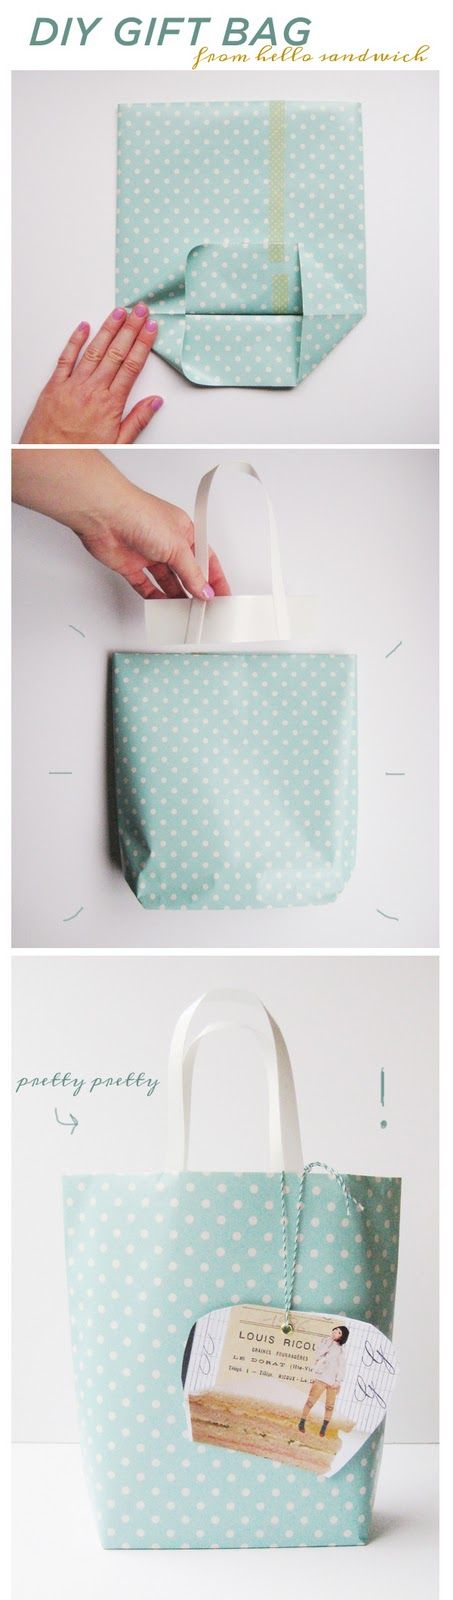 How to DIY Gift Bags from old wrapping paper!